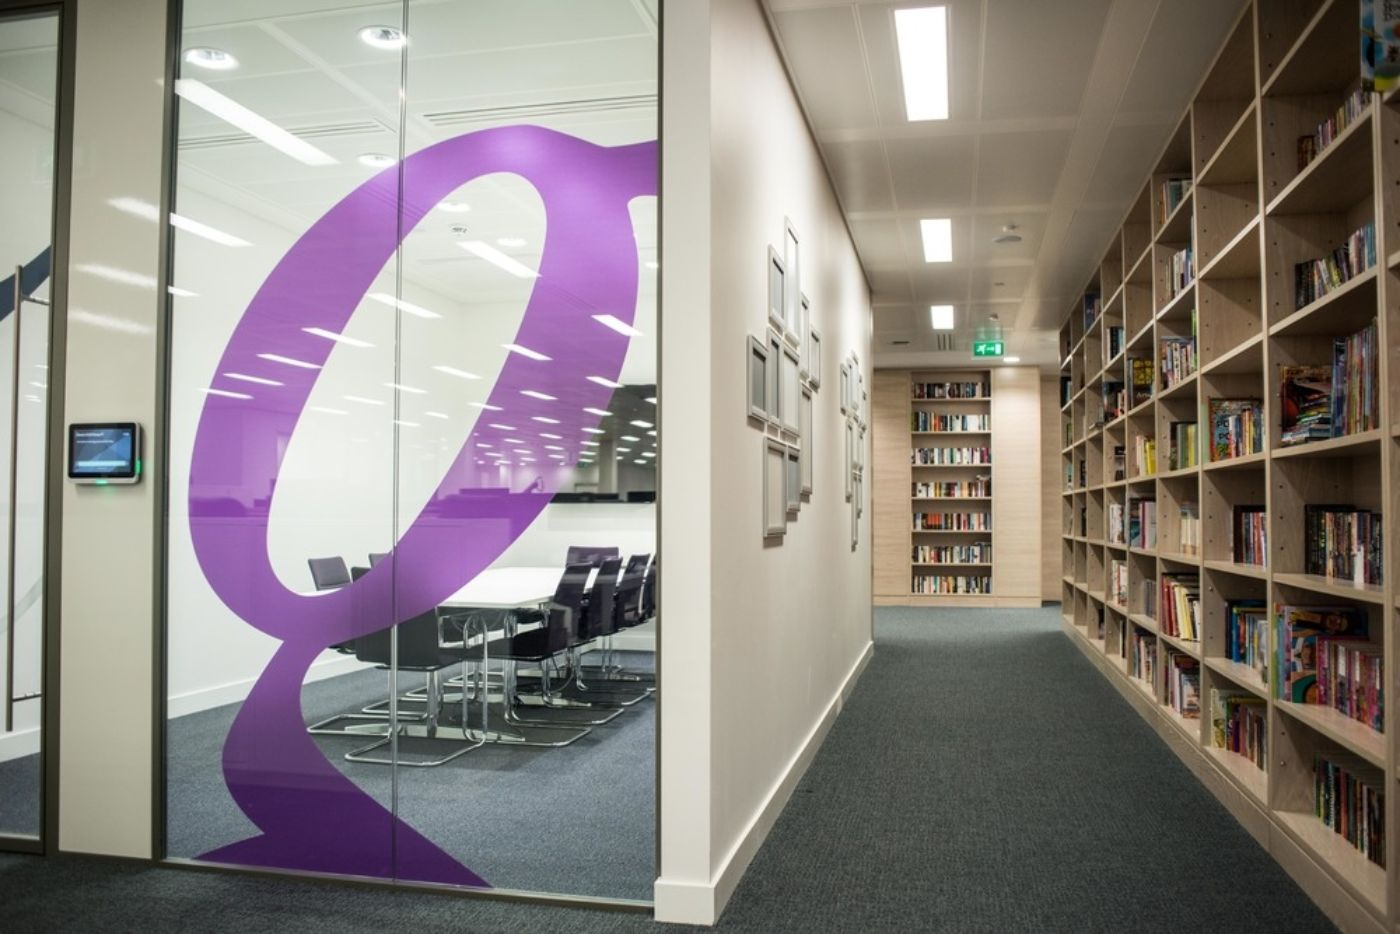 Meeting room and hallways with floor-to-ceiling bookshelves